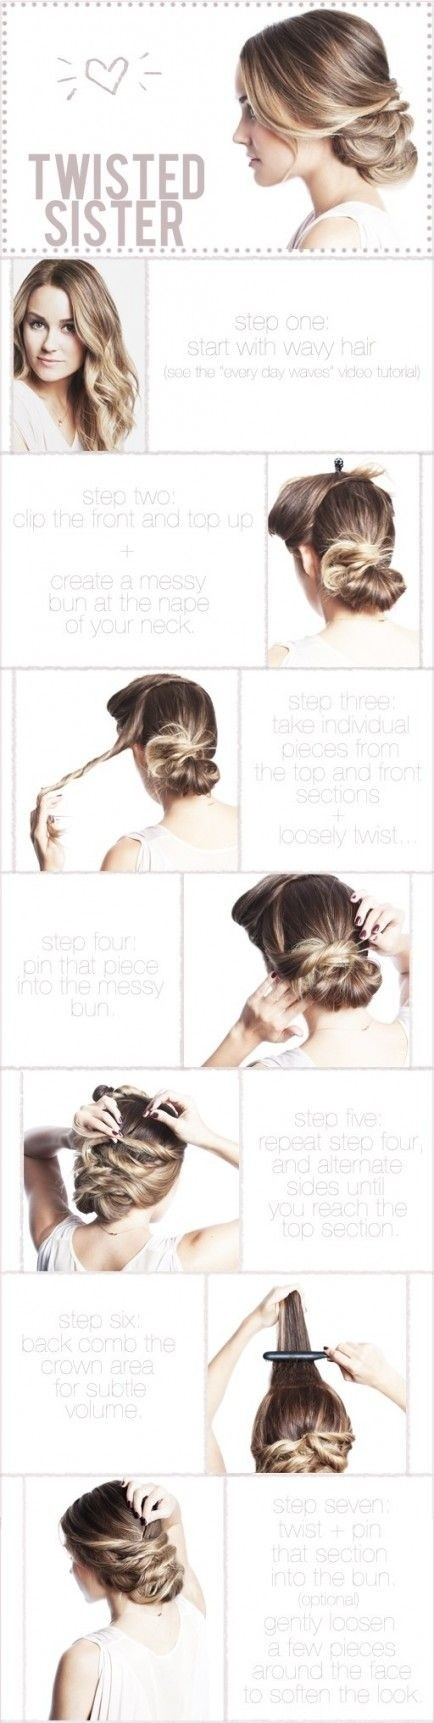 Twisted Updo Frisur Tutorial